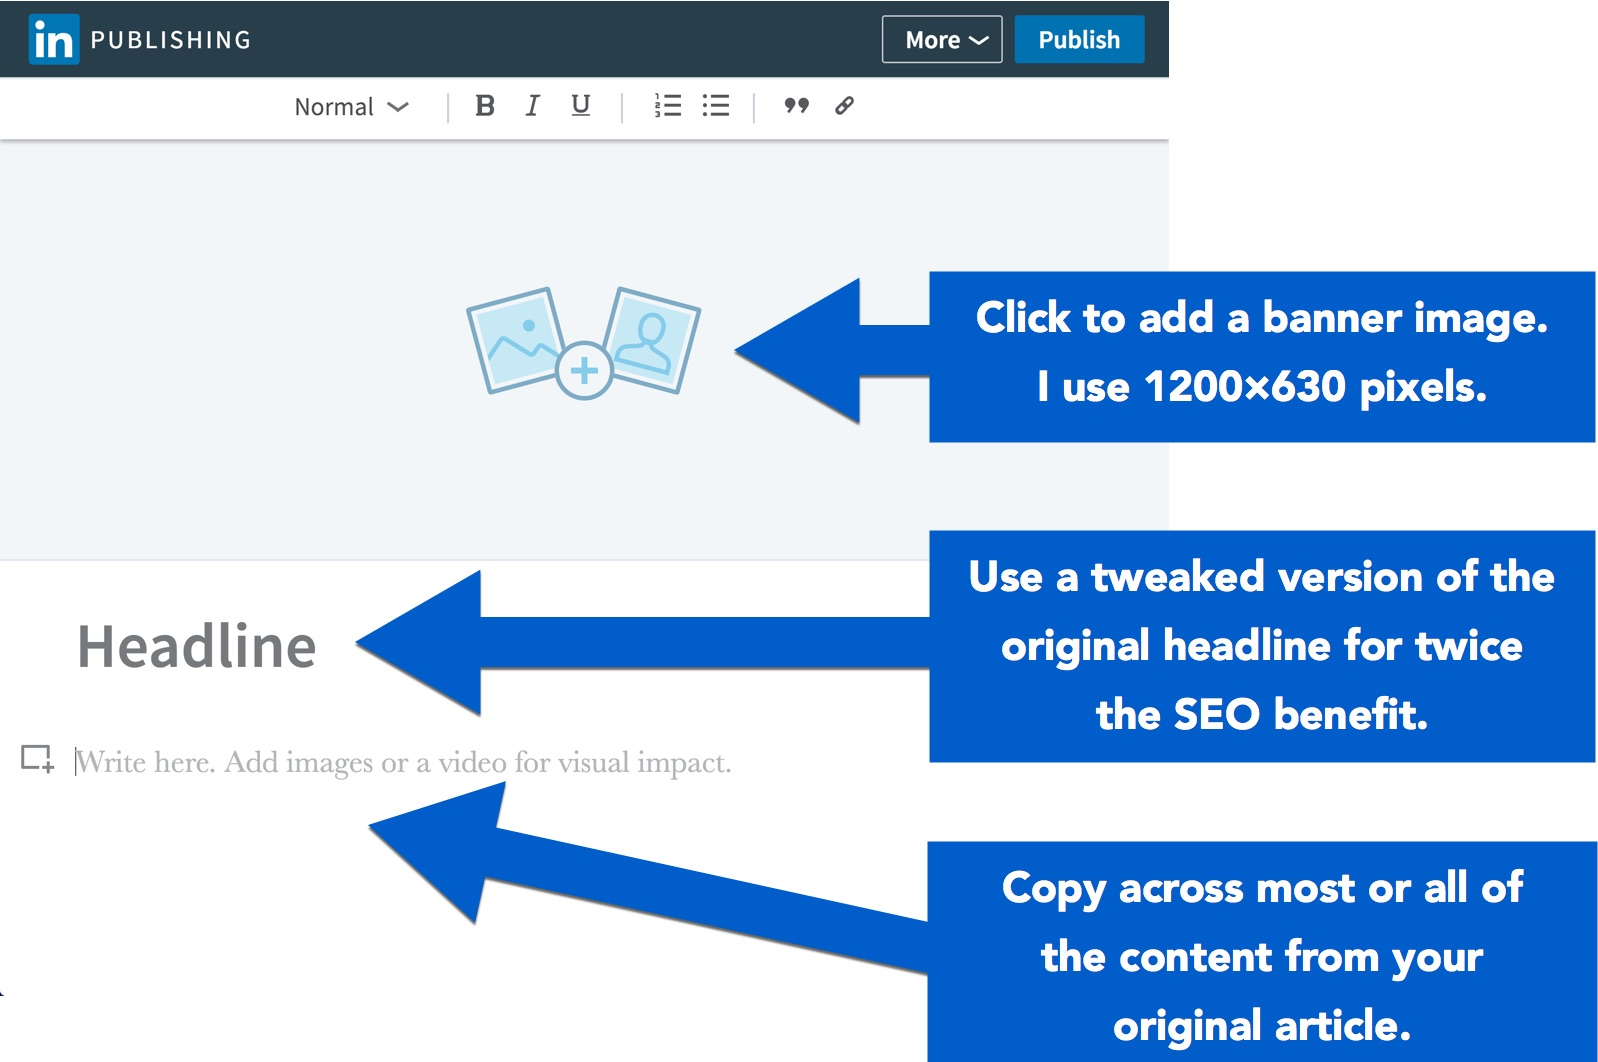 Add a banner, headline and content to your LinkedIn article